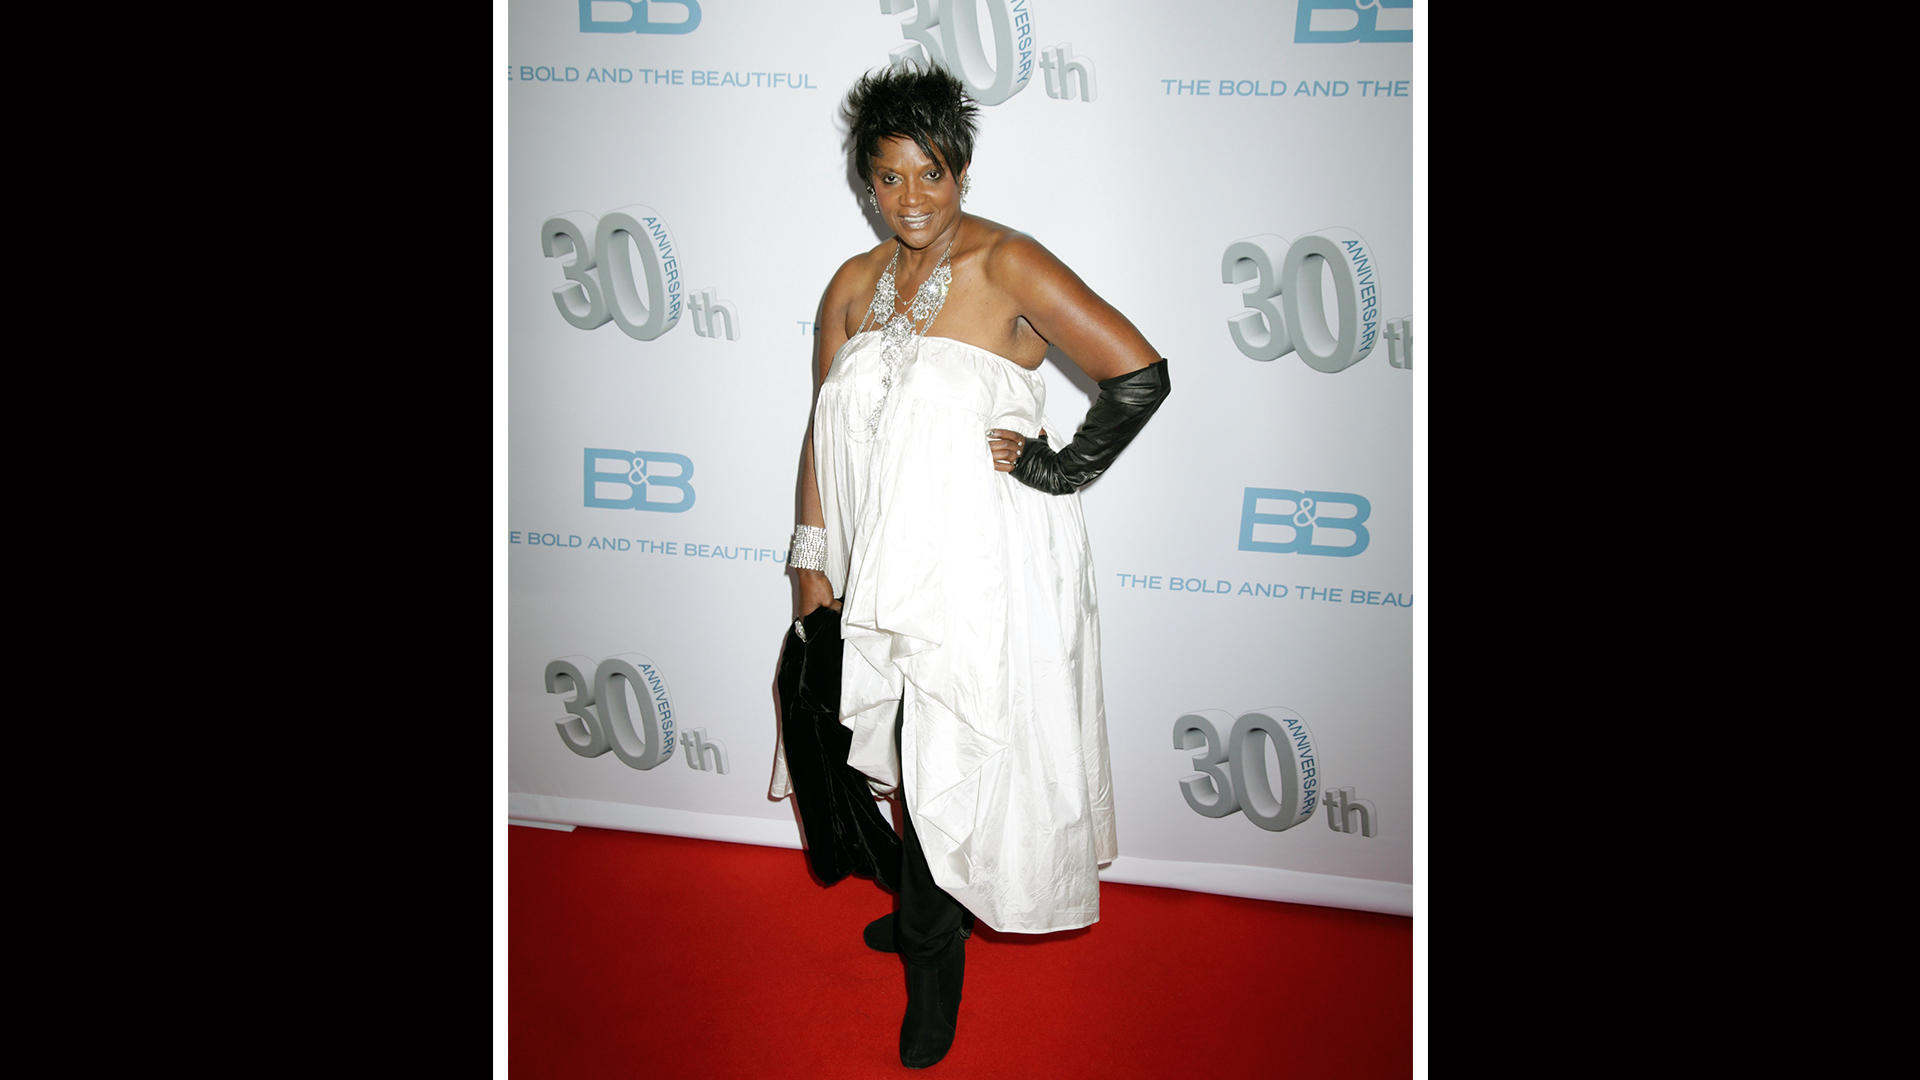 Anna Maria Horsford accessorizes her strapless white dress with a chunky, funky necklace.